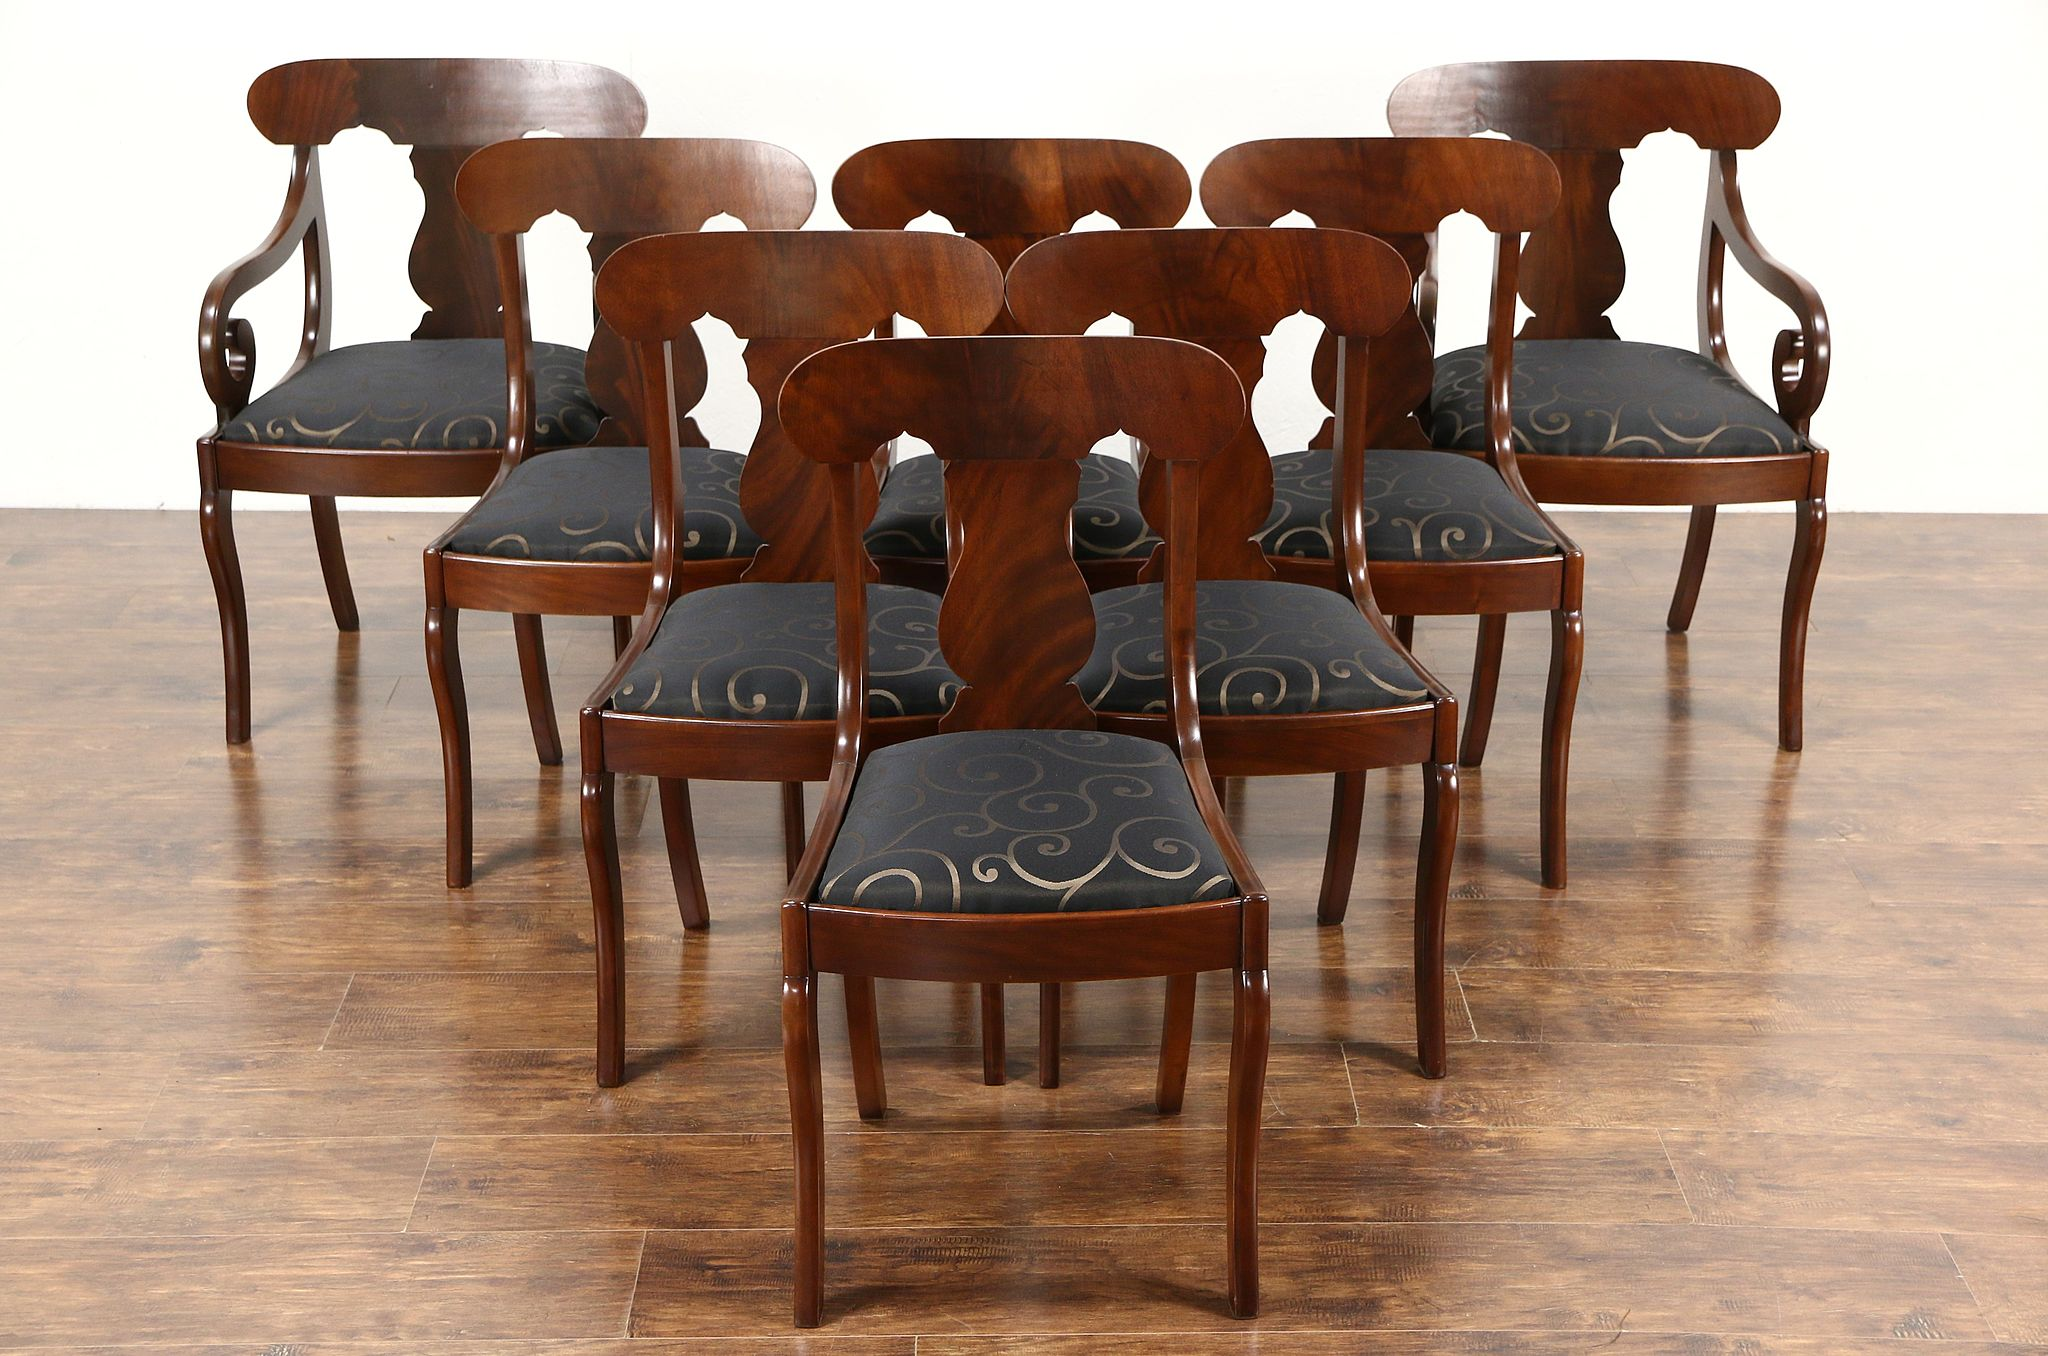 Incroyable Set Of 8 Empire 1930 Vintage Dining Chairs, Cherry U0026 Mahogany, New  Upholstery